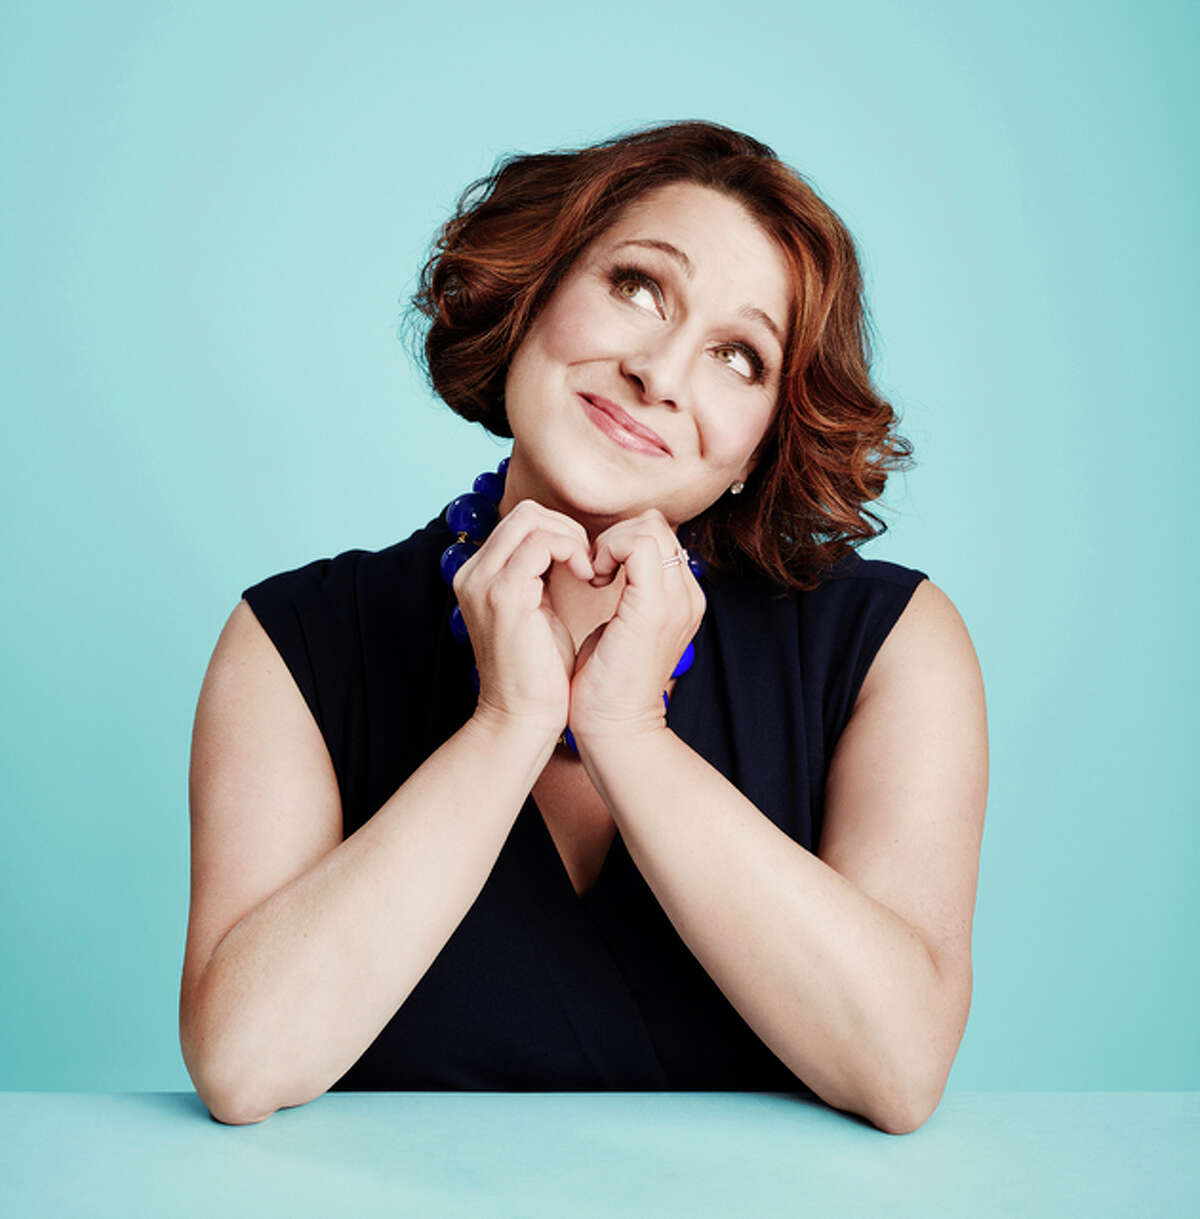 """Jennifer Weiner, author of """"Hungry Heart, Adventures in Life, Love, and Writing"""" will speak about her book and sign copies on Wednesday, Oct. 19, at the Jewish Community Center/Staenberg Family Complex as part of the annual St. Louis Jewish Book Festival."""